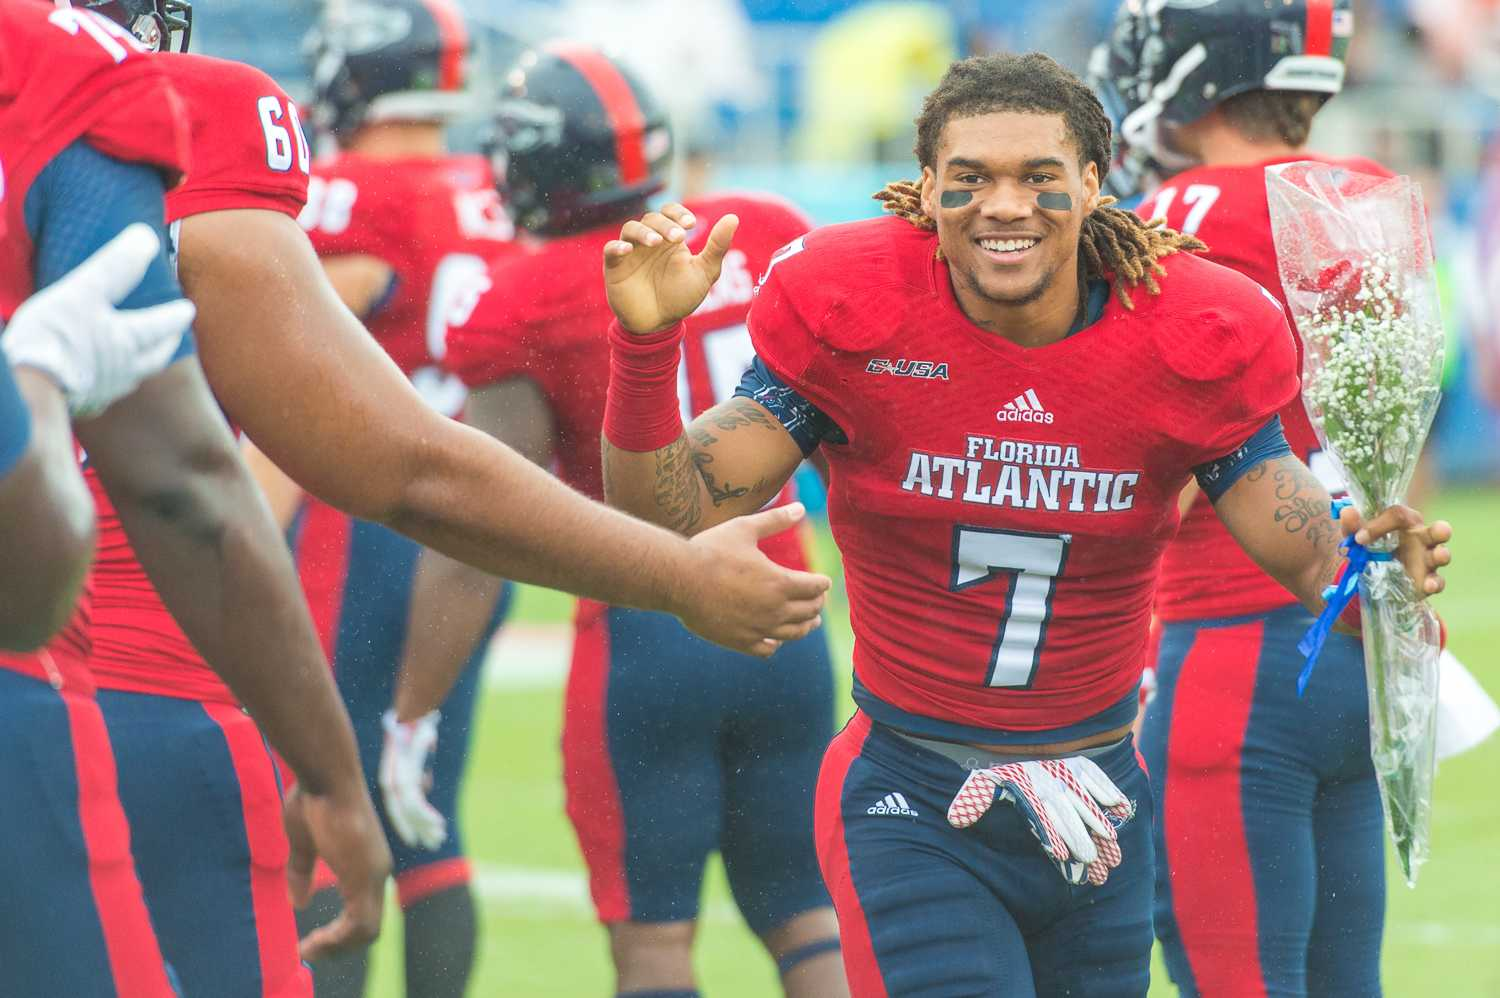 Defensive back Cre'von LeBlanc was one of five FAU players signed to an NFL contract over the weekend. Max Jackson | Staff Photographer